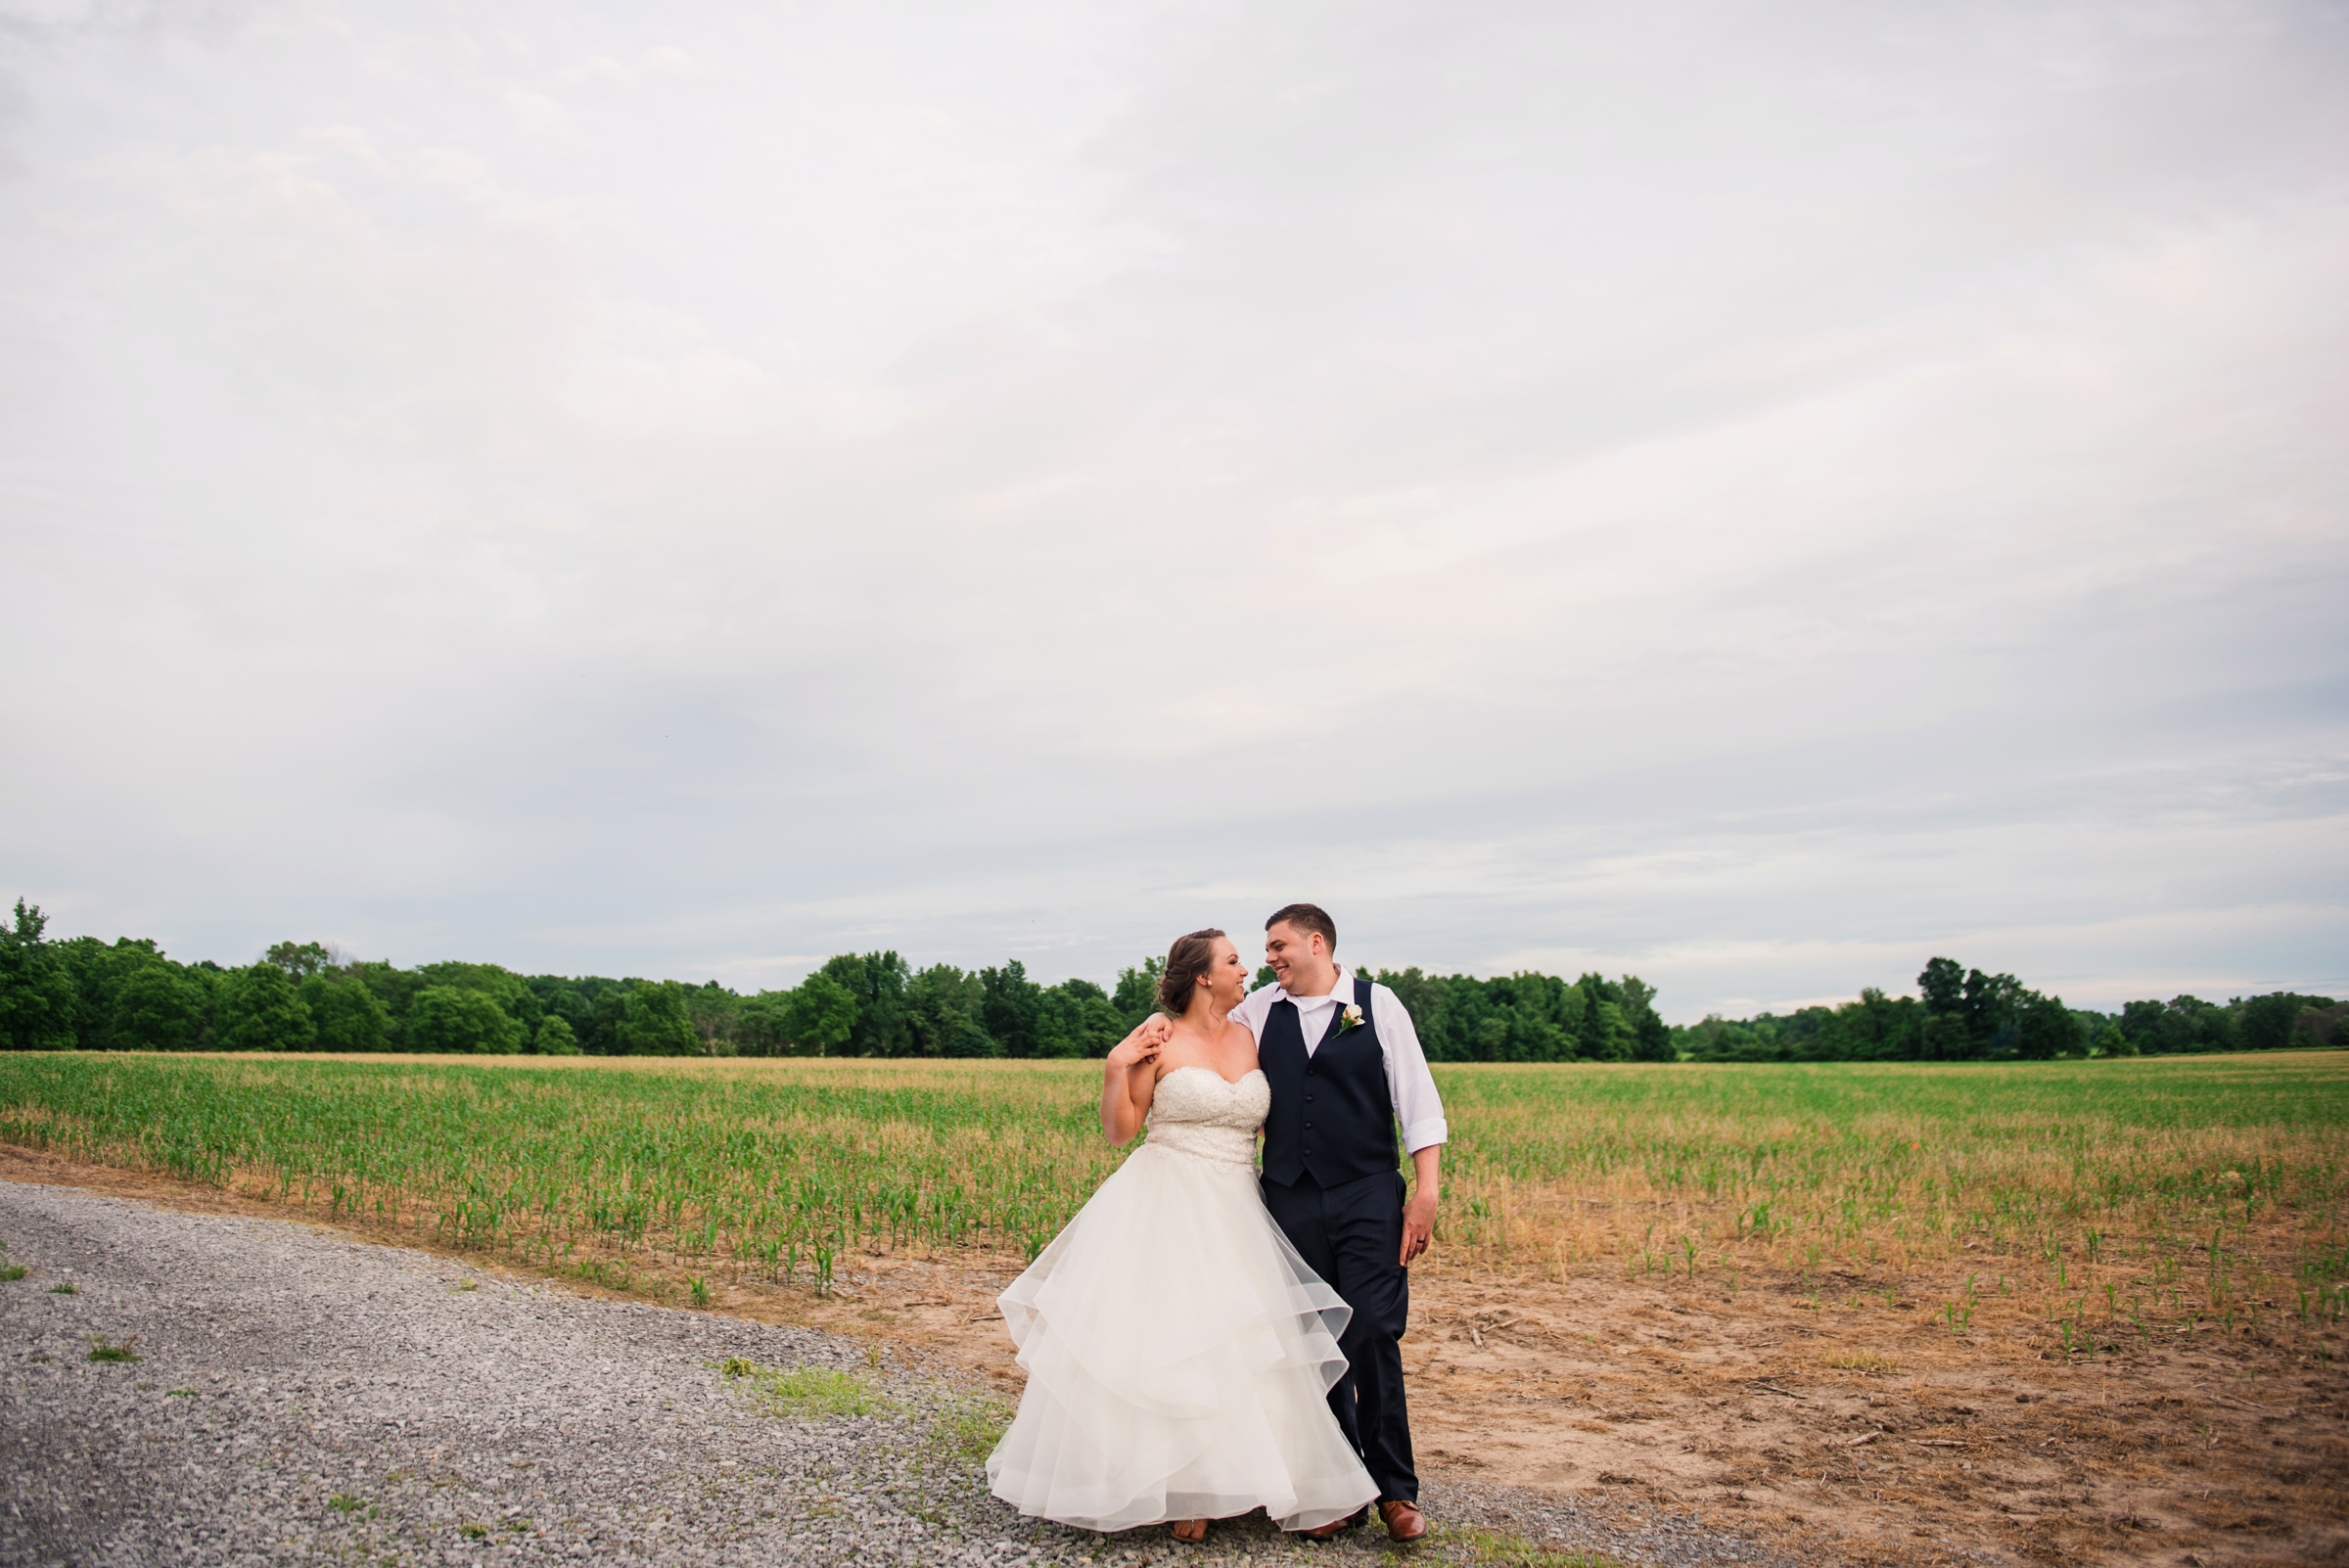 JILL_STUDIO_Wedding_JILL_STUDIO_Rochester_NY_Photographer_4-DSC_0799.jpg